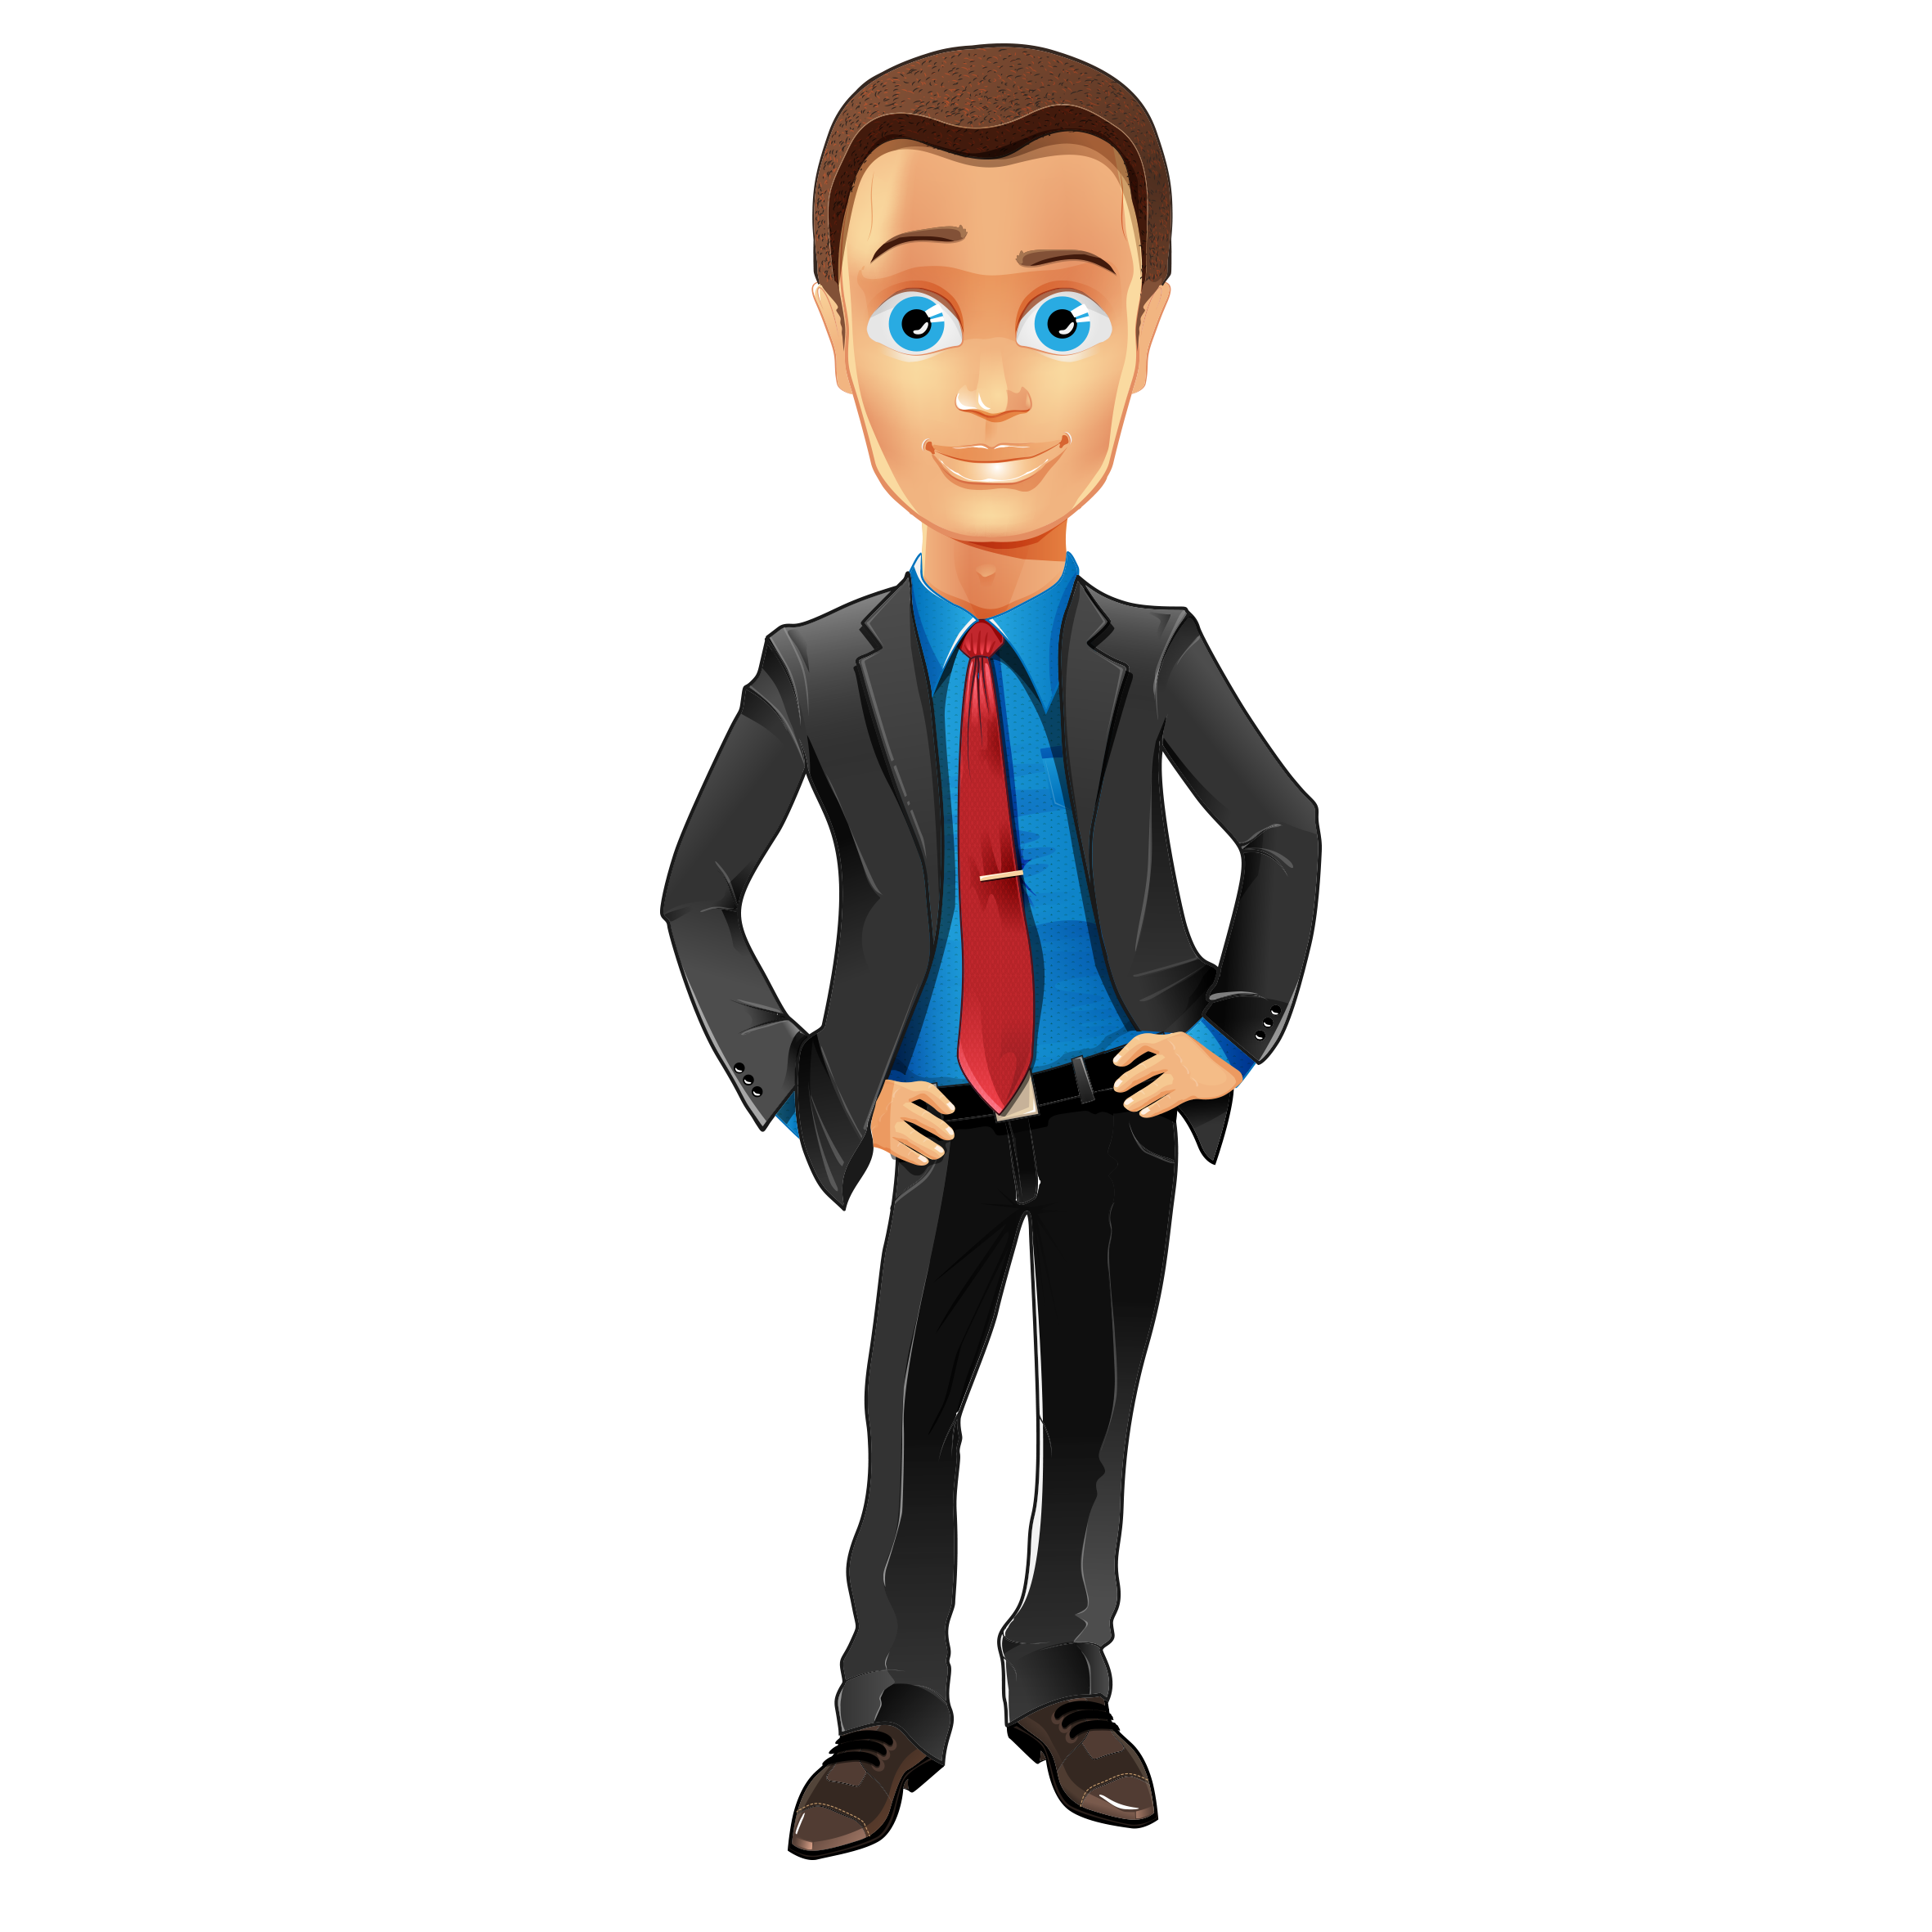 Man in suit cartoon png. Business character illustration people